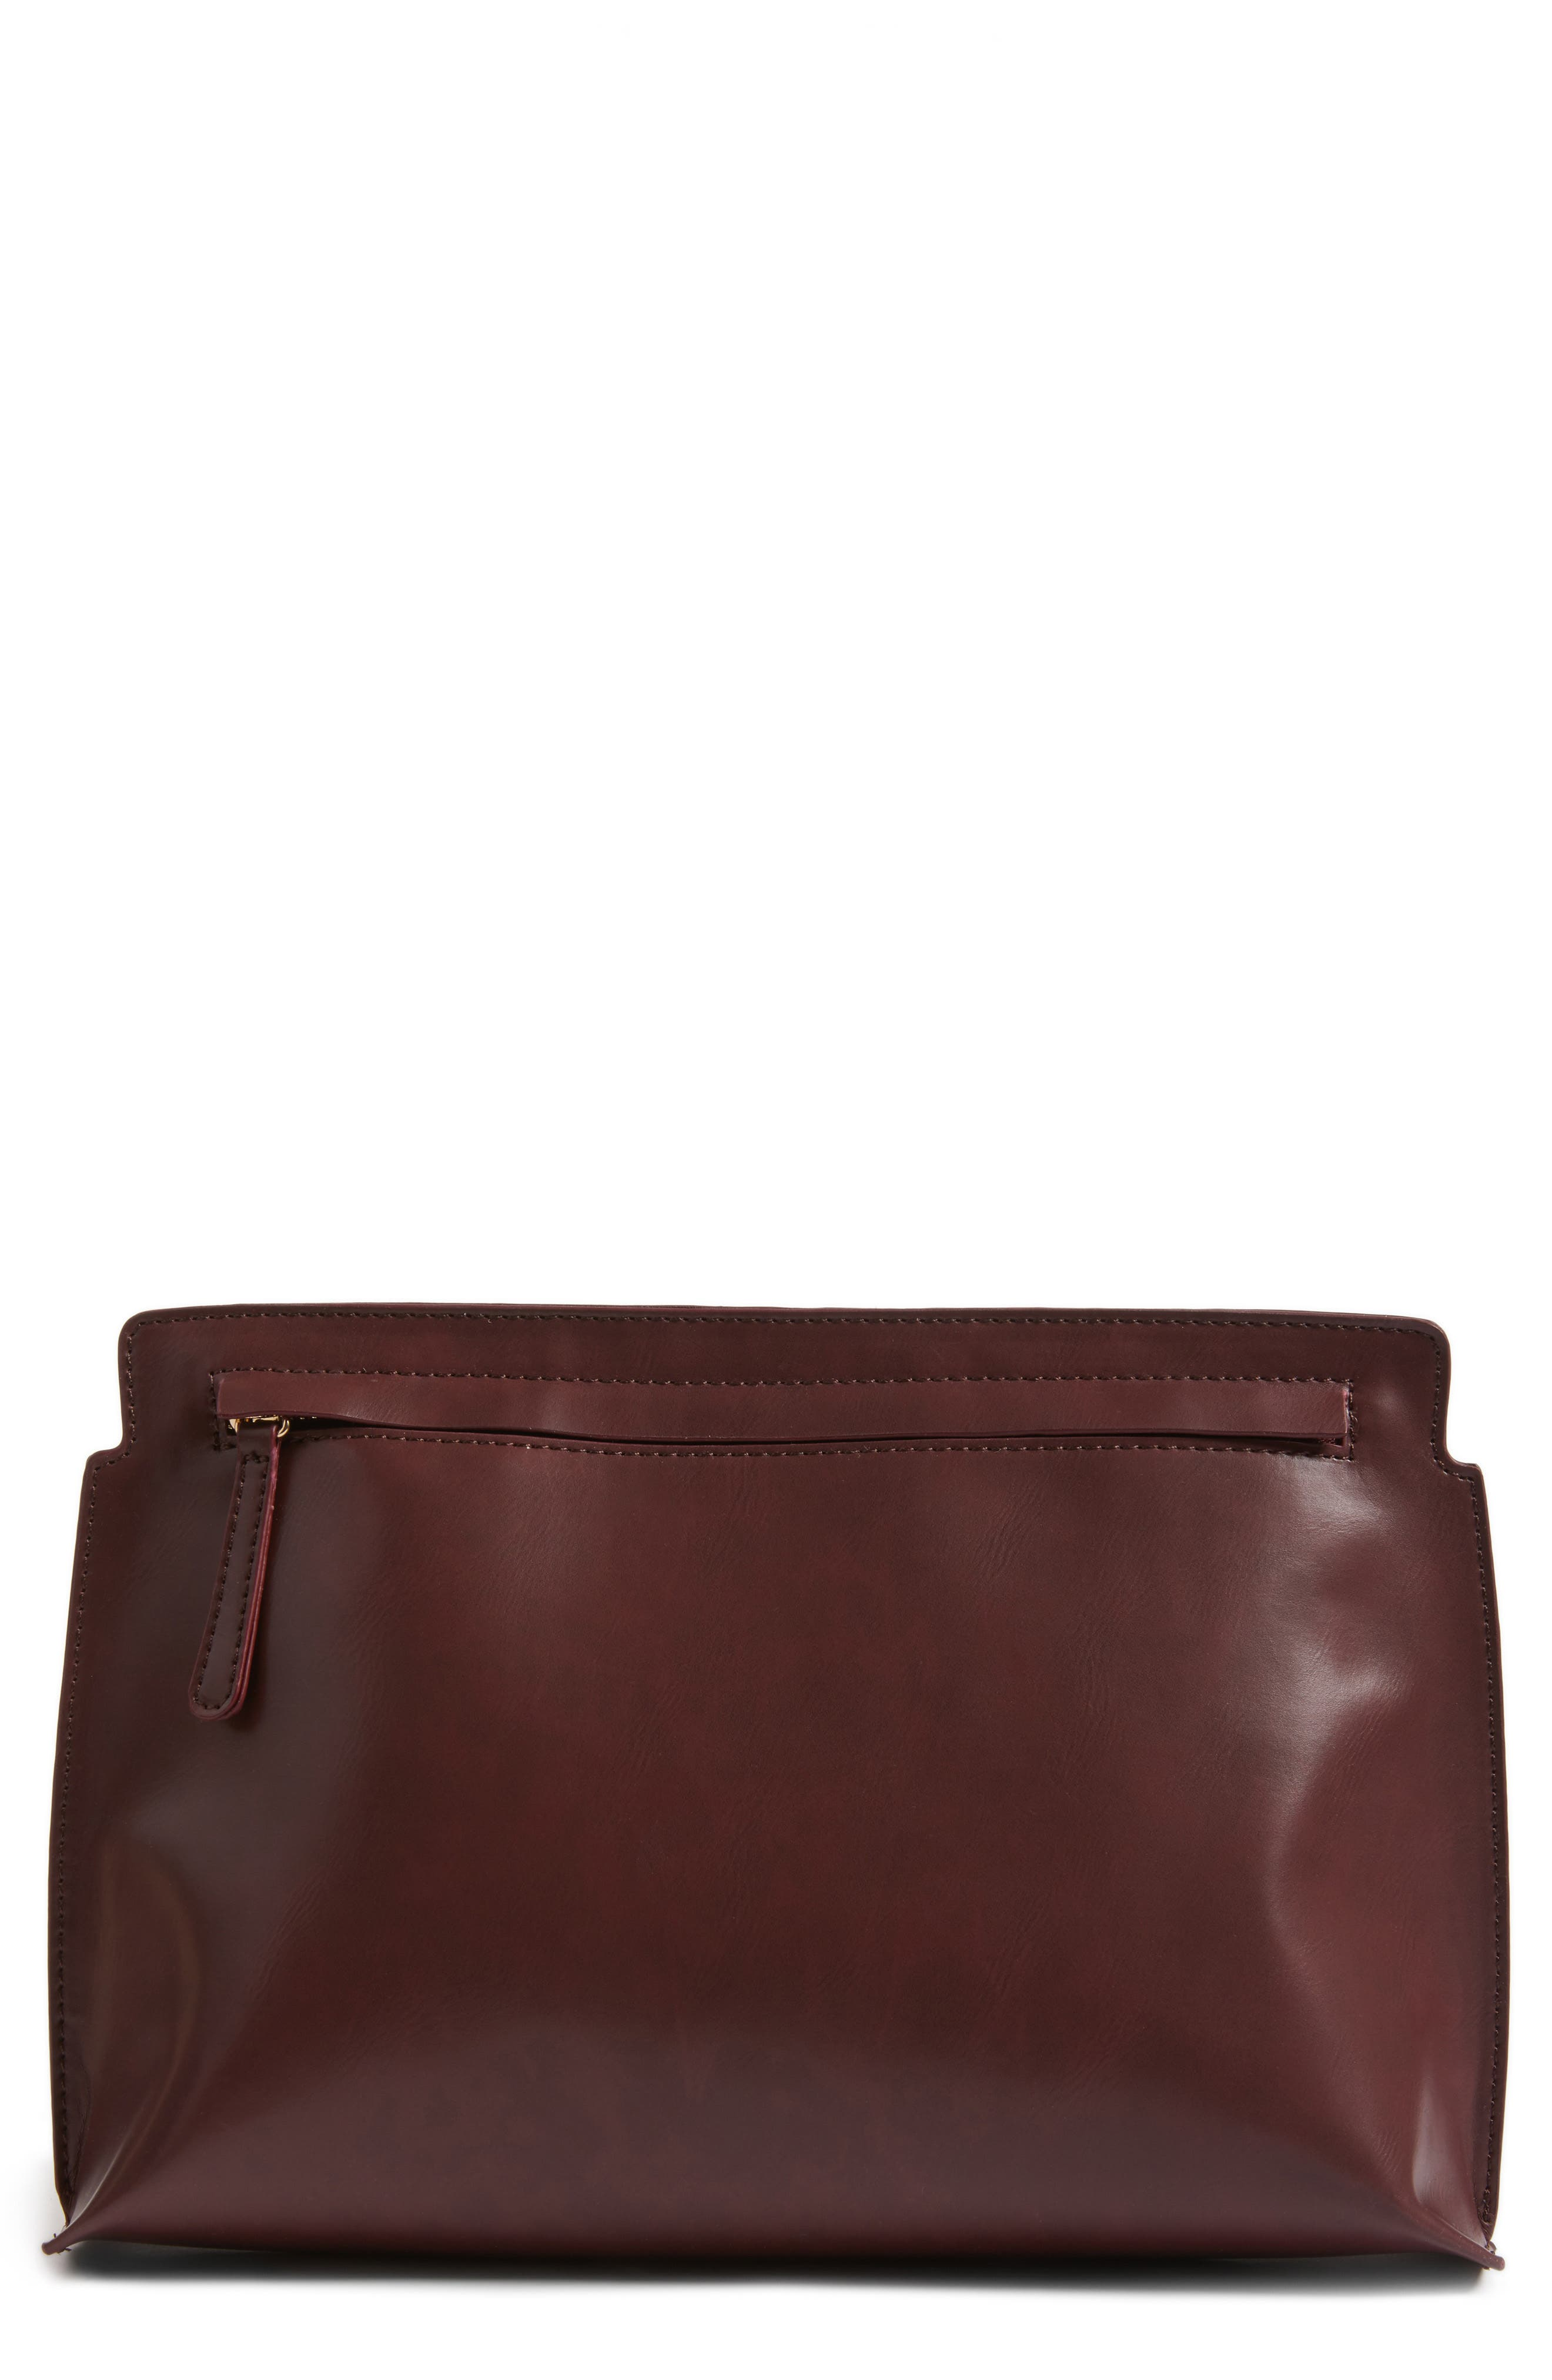 Alternate Image 1 Selected - BP. Faux Leather Clutch